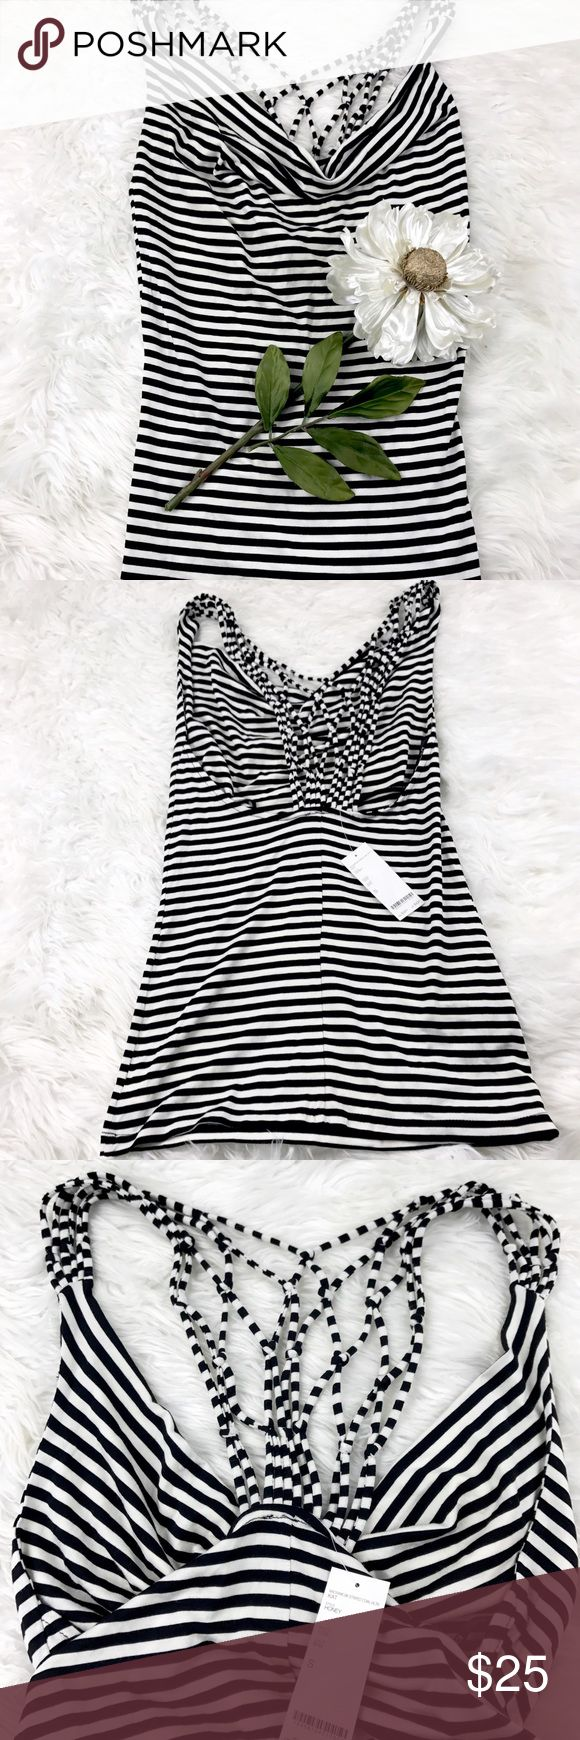 "💕SALE💕Bebe Black & White Striped Strappy Top Adorable 💕NWT Bebe Black & White Striped Strappy Top  25"" from the top of the shoulder to the bottom bebe Tops"